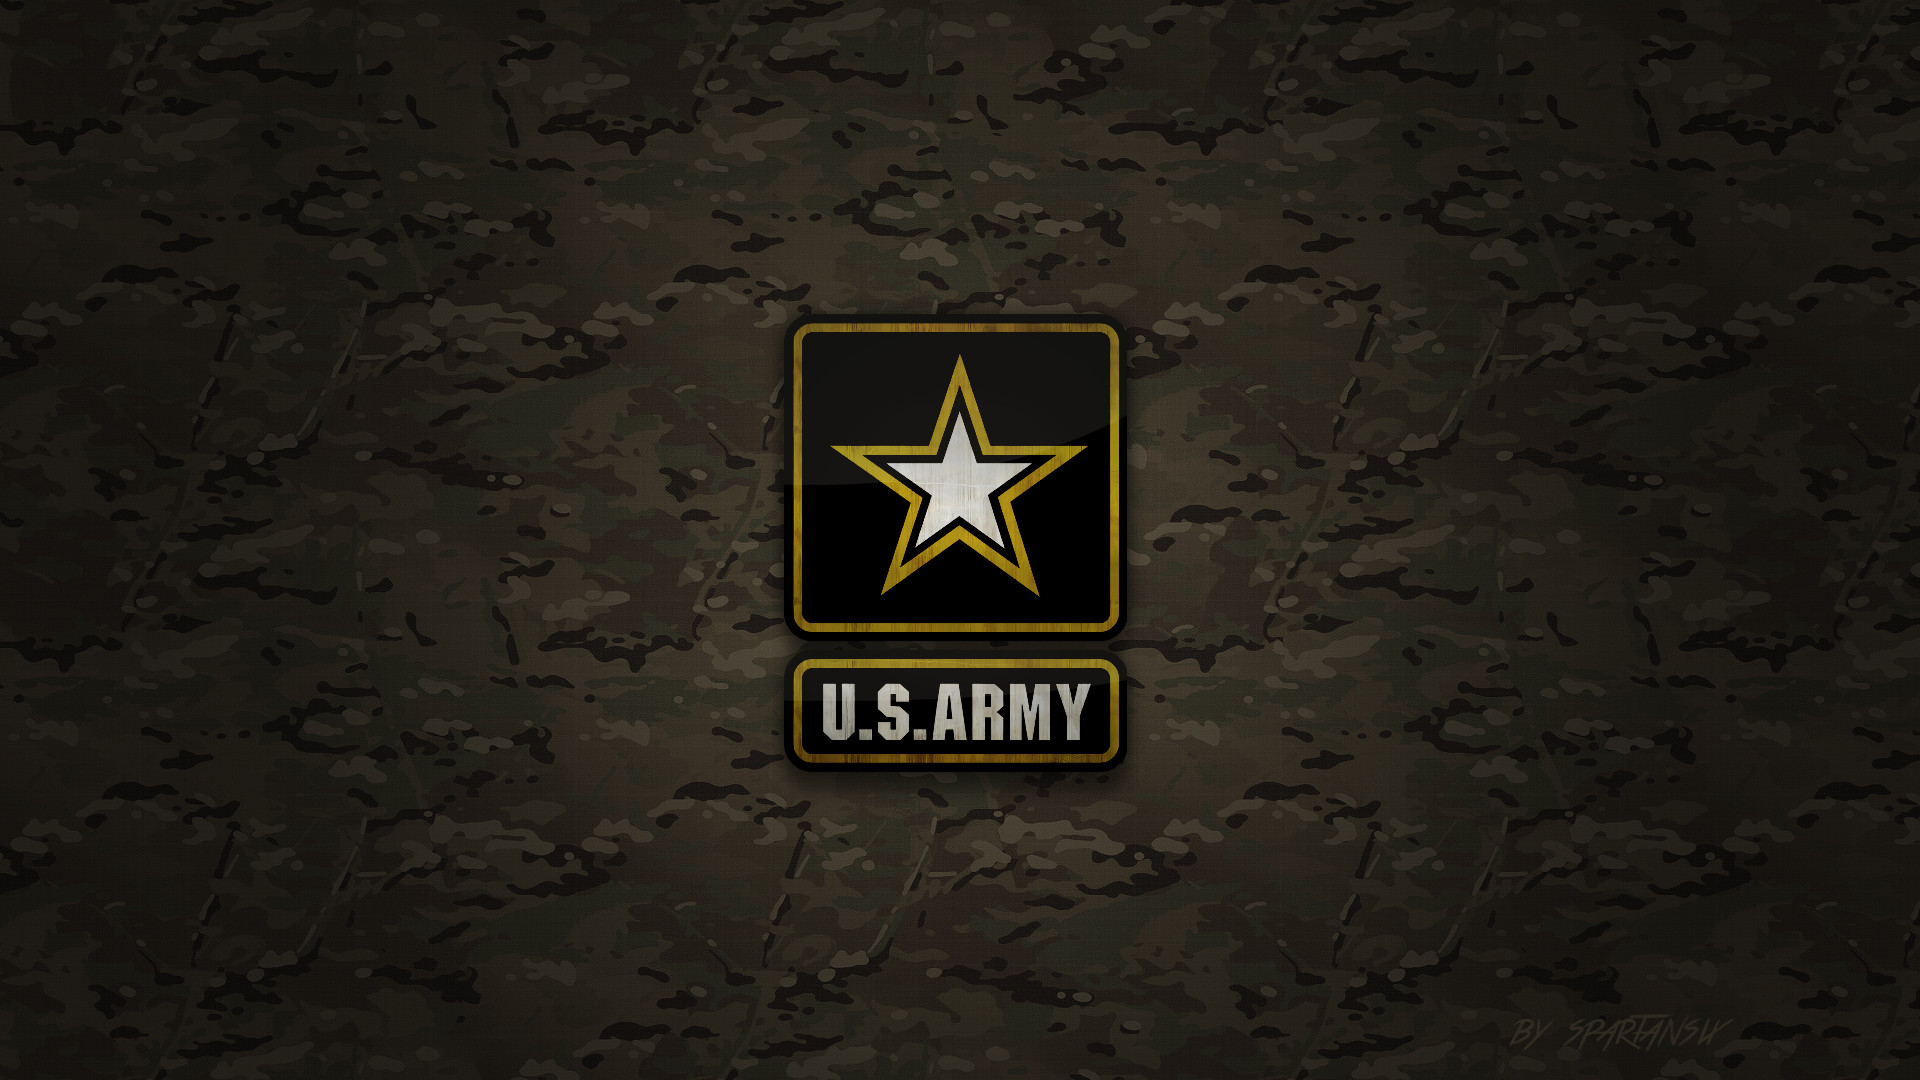 awesome army full screen   HDwallpaper   Pinterest   Army and Hd desktop